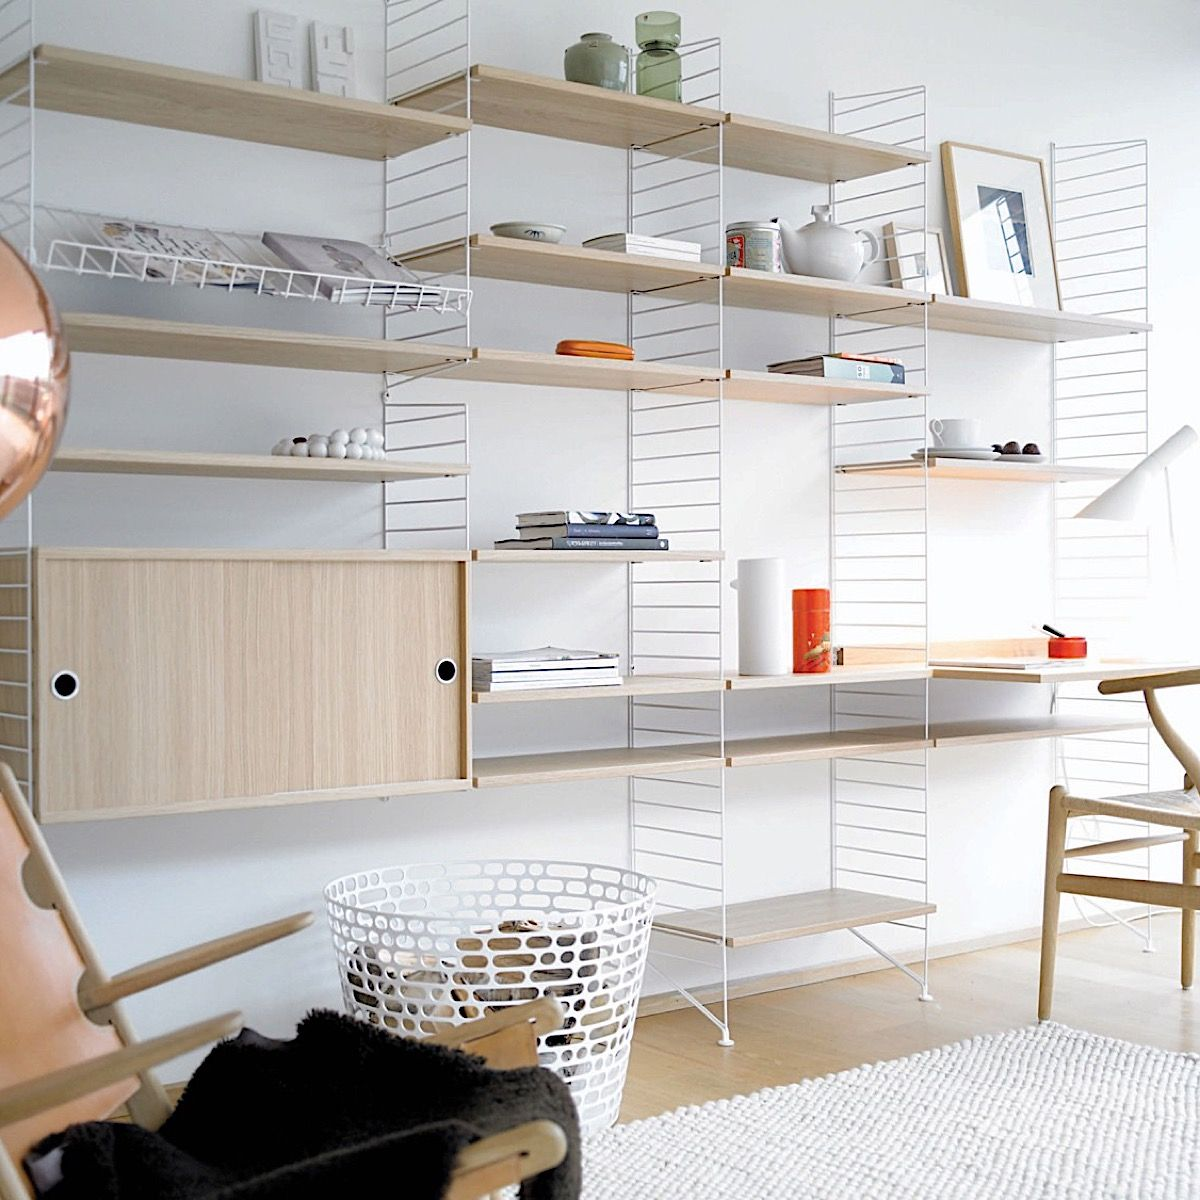 Oak and white String shelving system including wire magazine rack